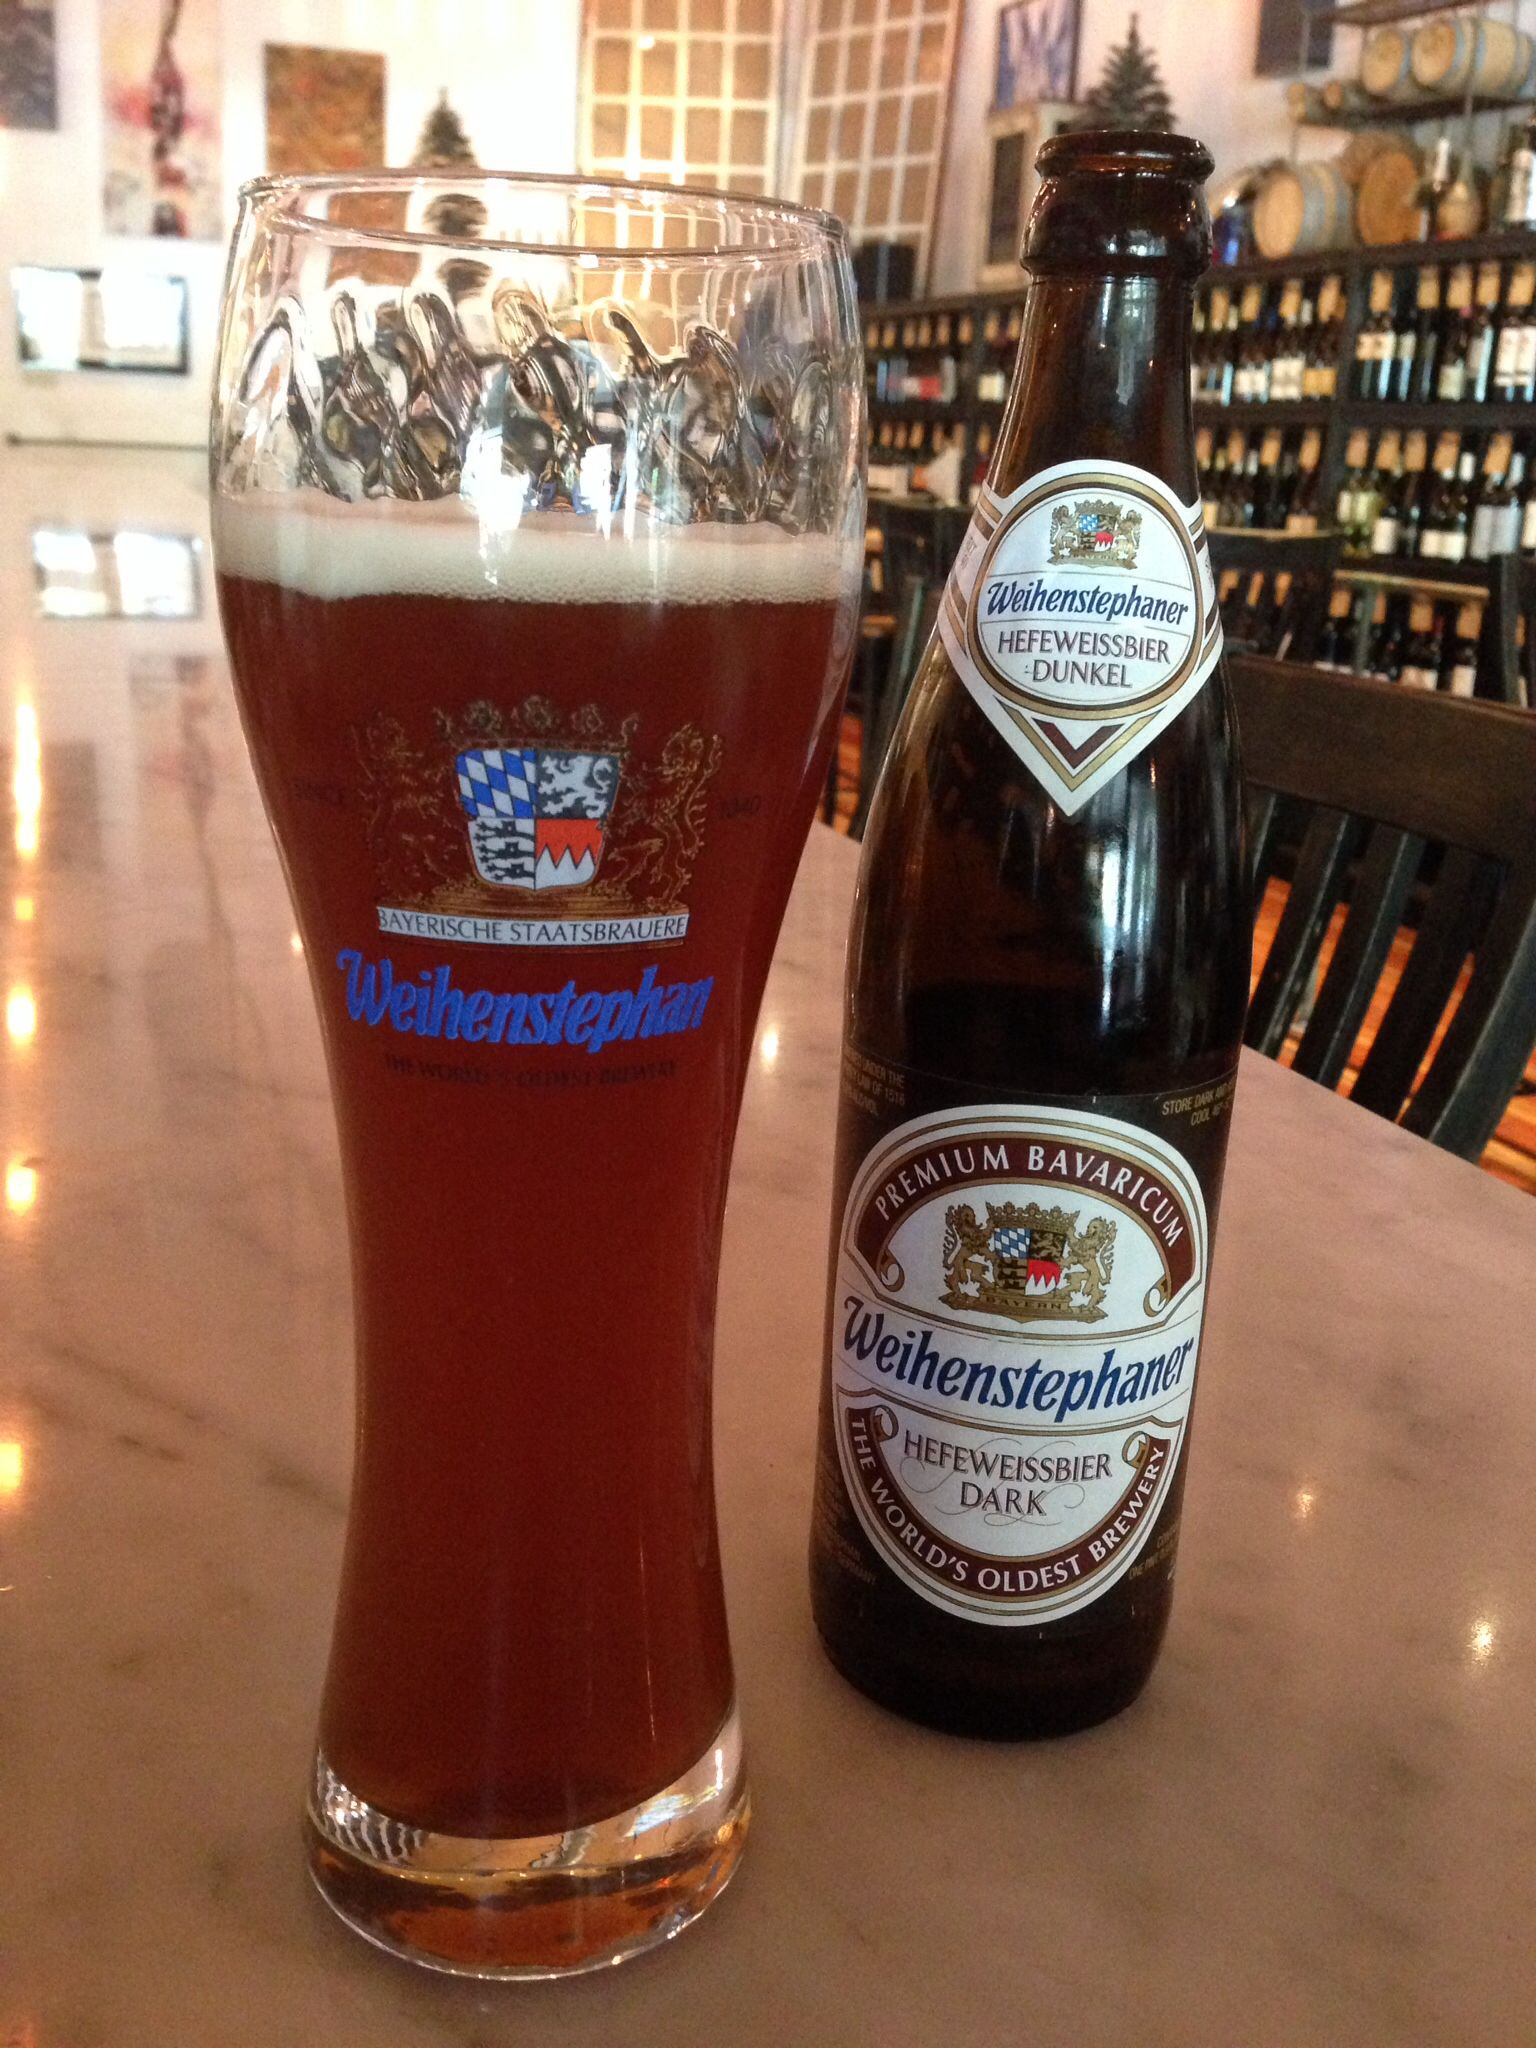 Weihenstephaner Yay Hubby Is Going To Be Happy I Found The Monk Brewery The World S Oldest Continuously Operating Brewery Th Best Dark Beer Corn Beer Beer